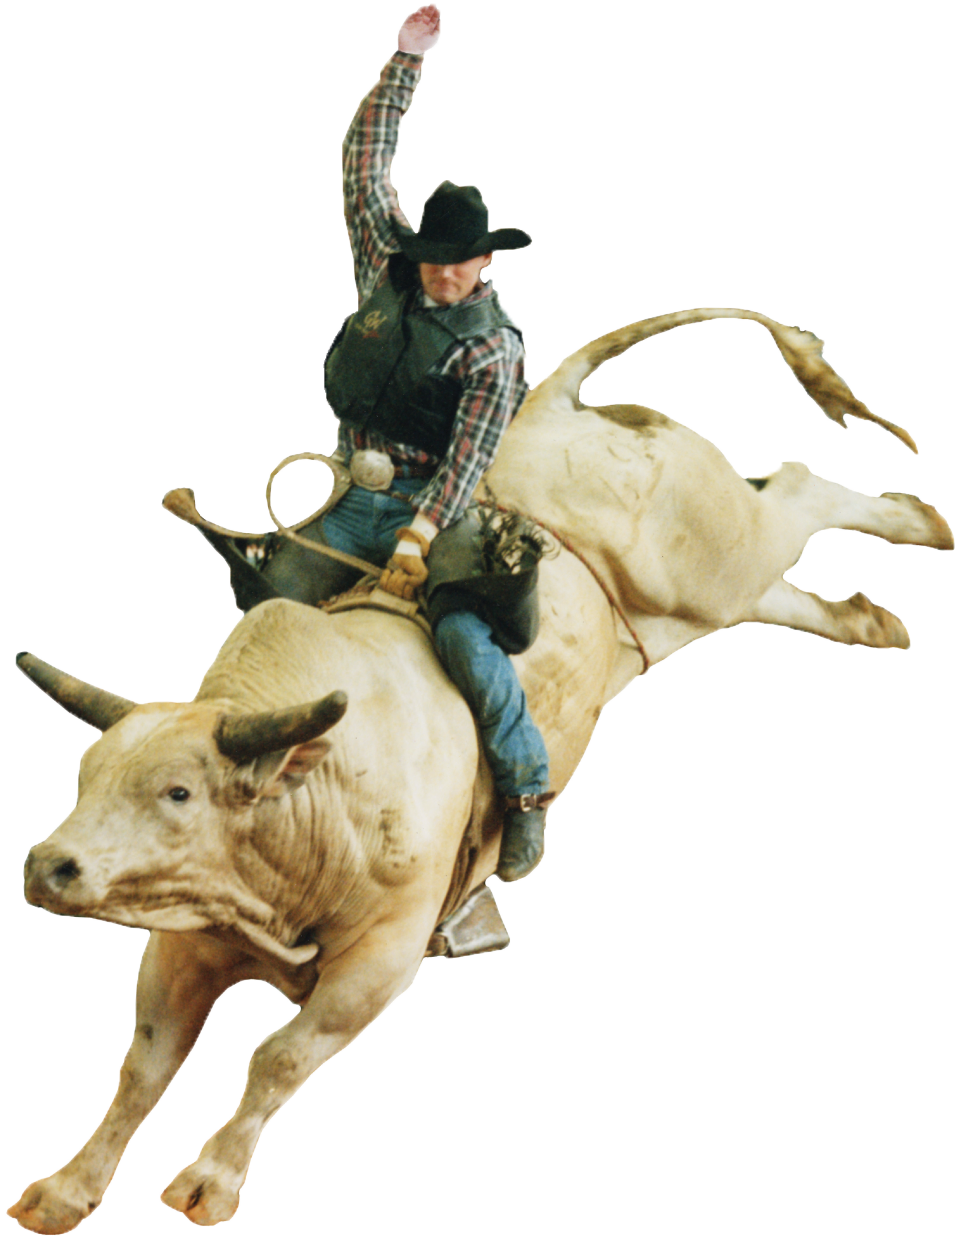 Pbr Bull Riding Png - Bull Riding PNG HD Transparent Bull Riding HD.PNG Images. | PlusPNG